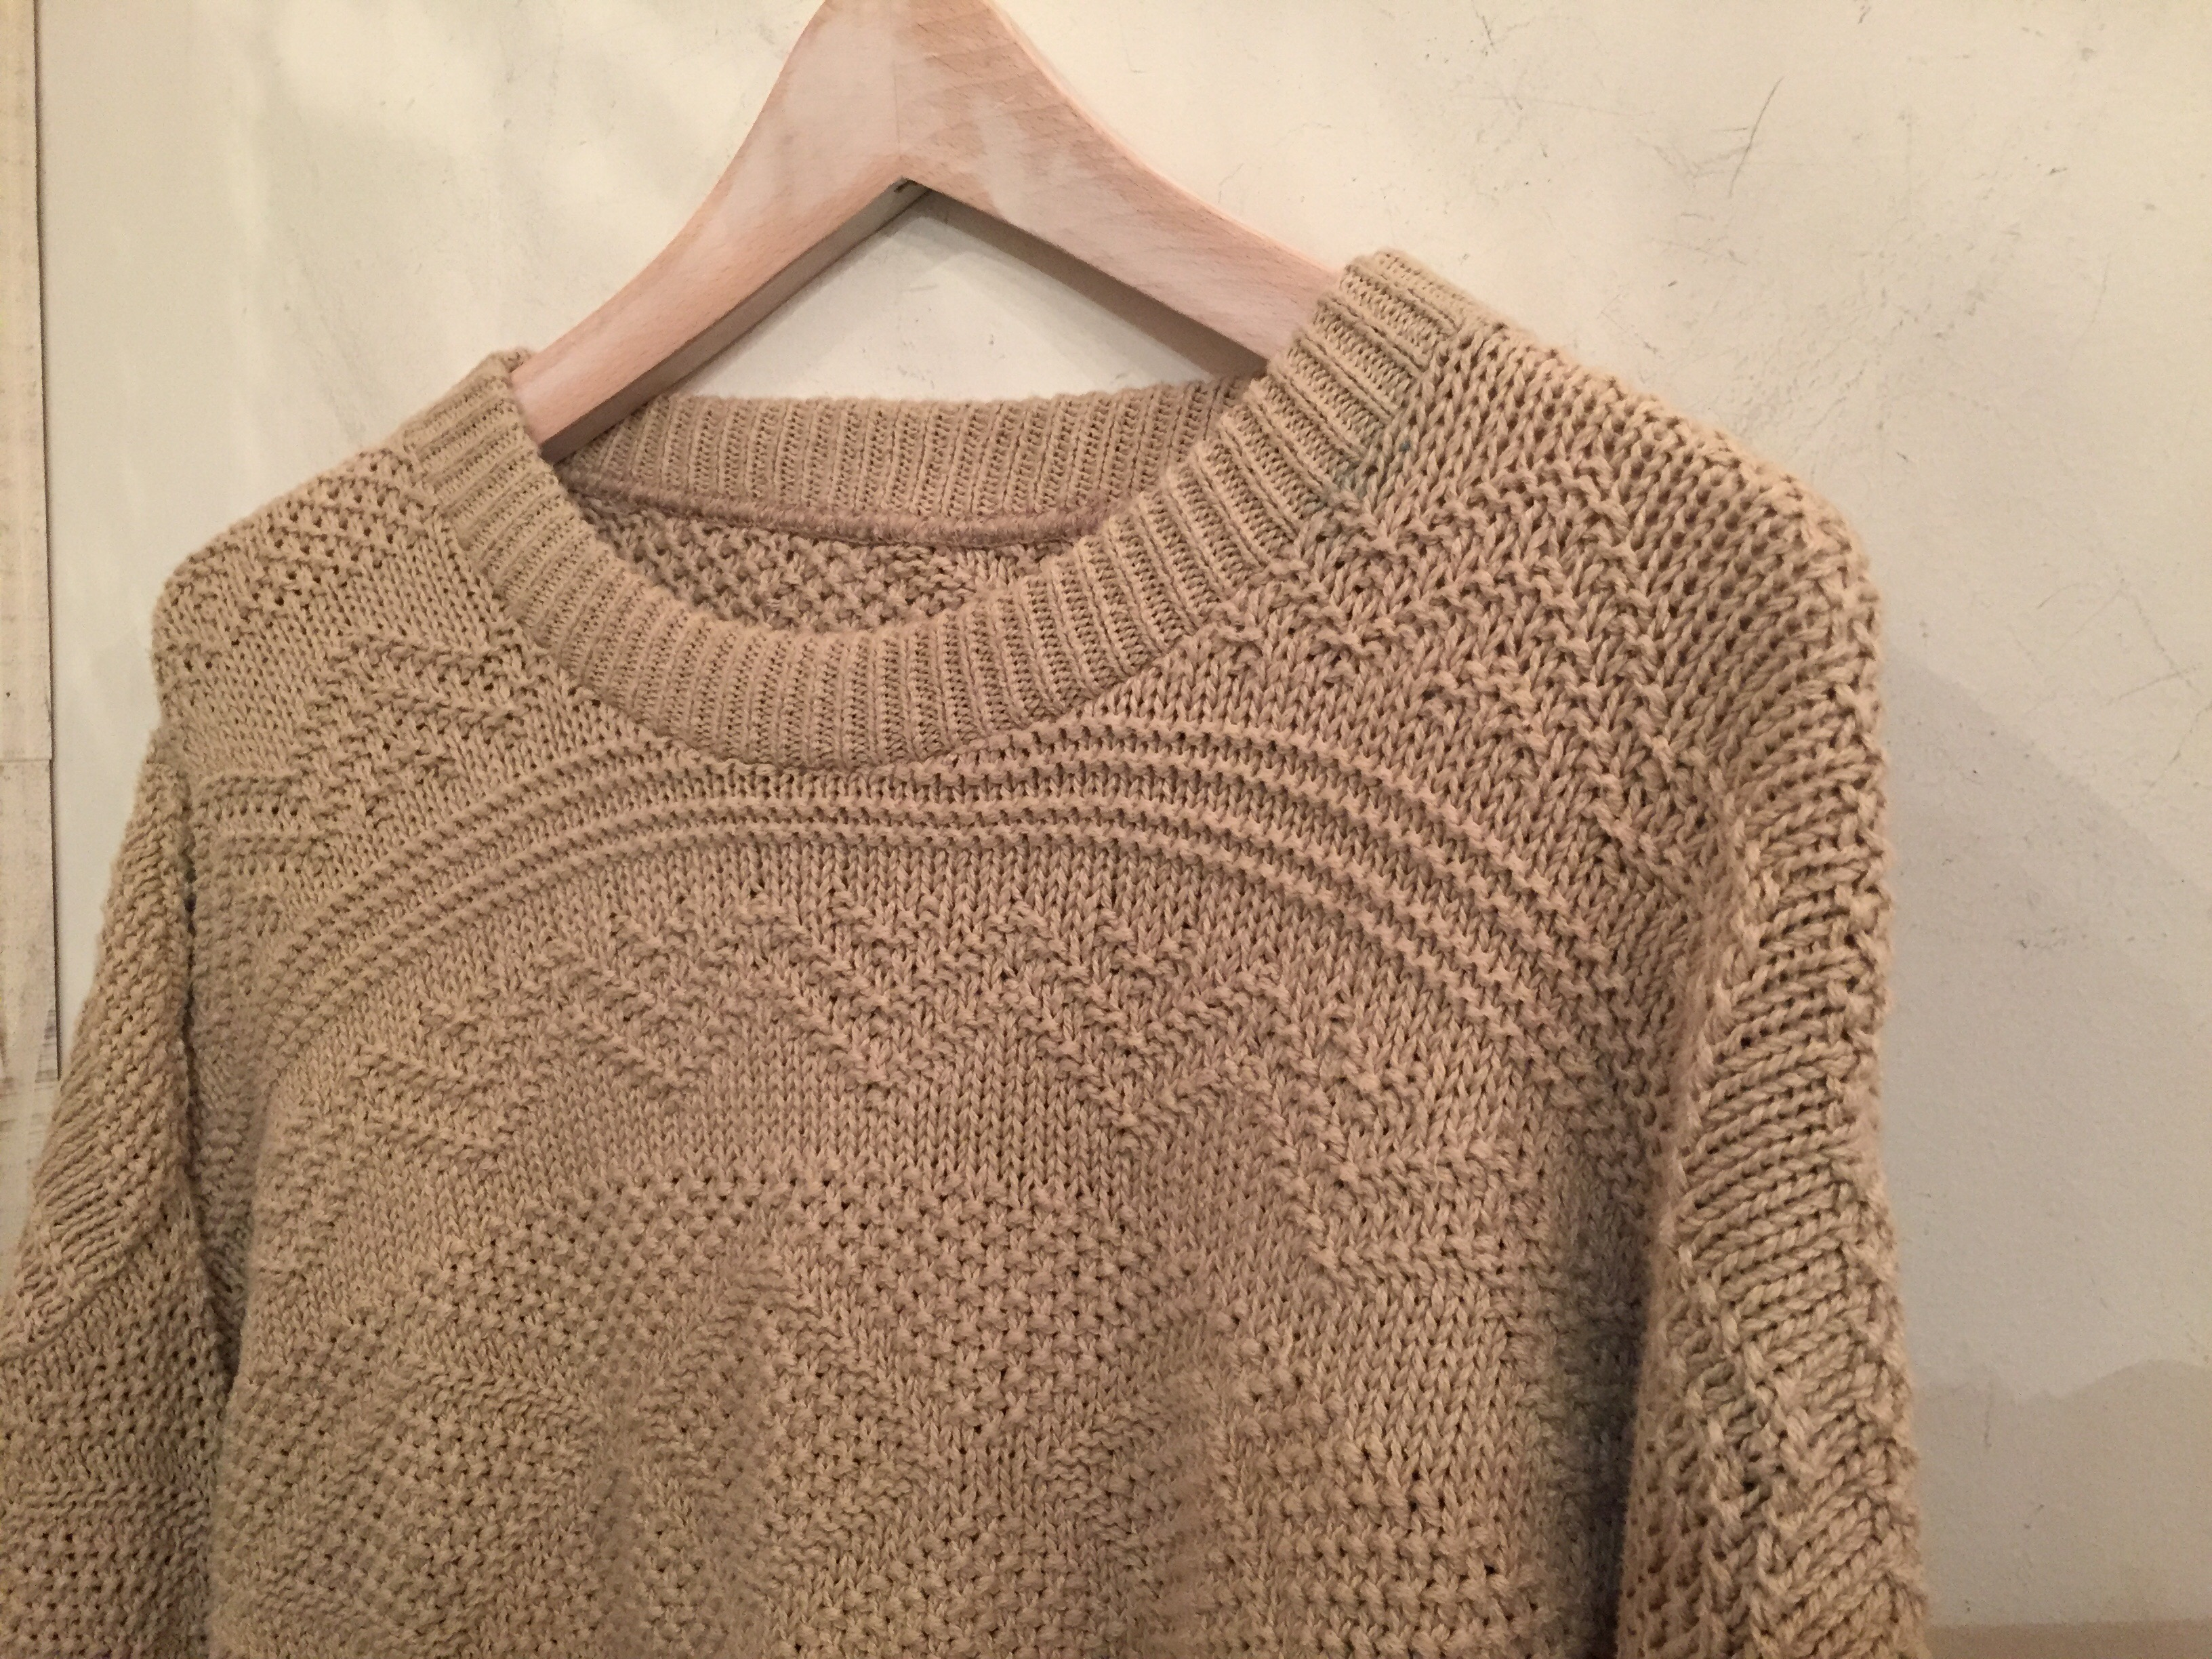 Knit Item blog